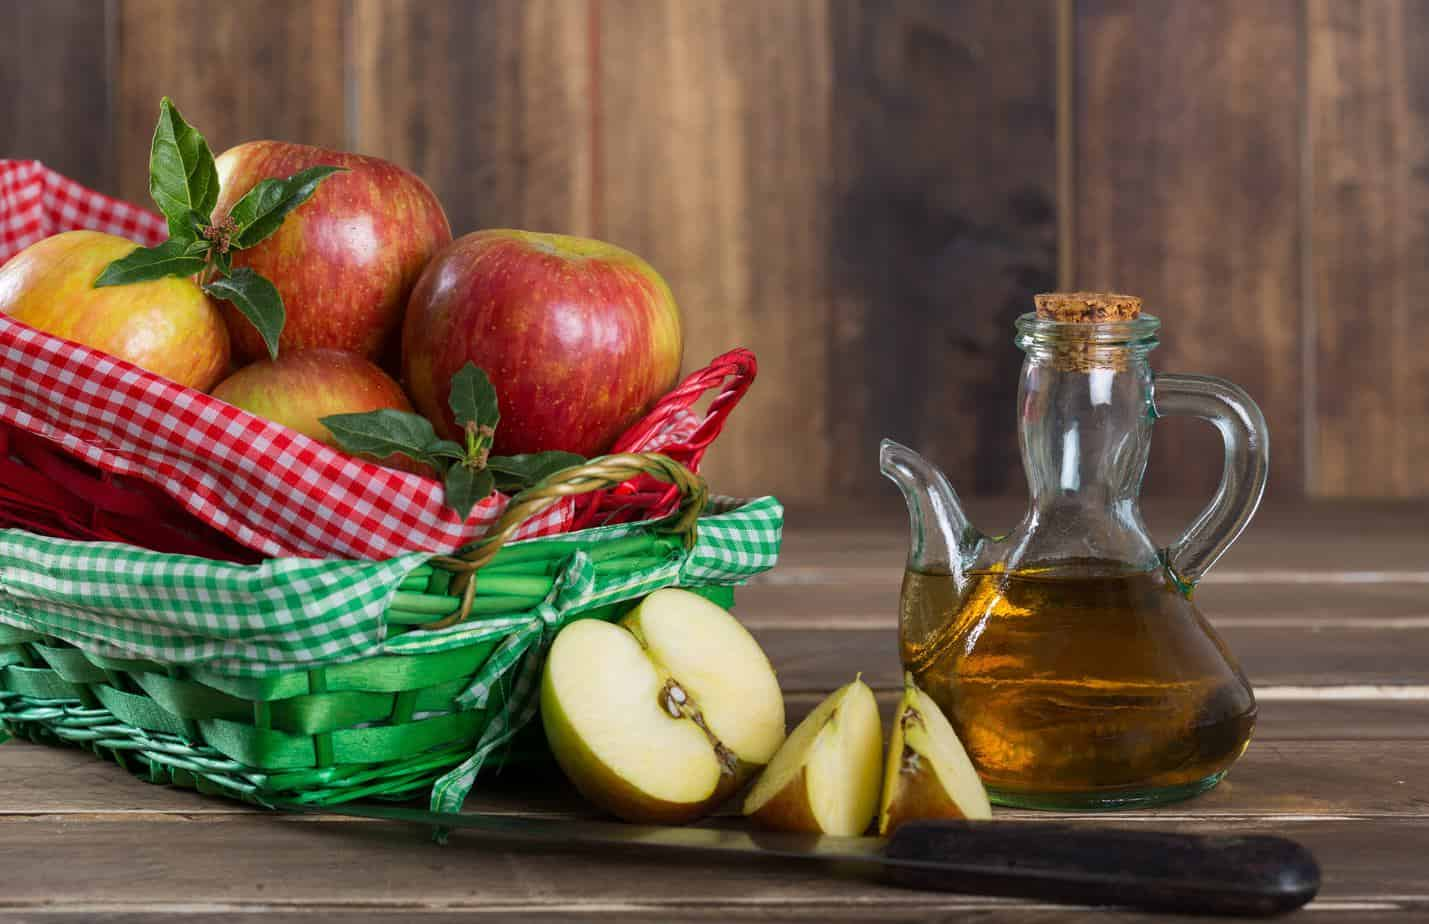 Conditions Improved With Apple Cider Vinegar and How To Use It